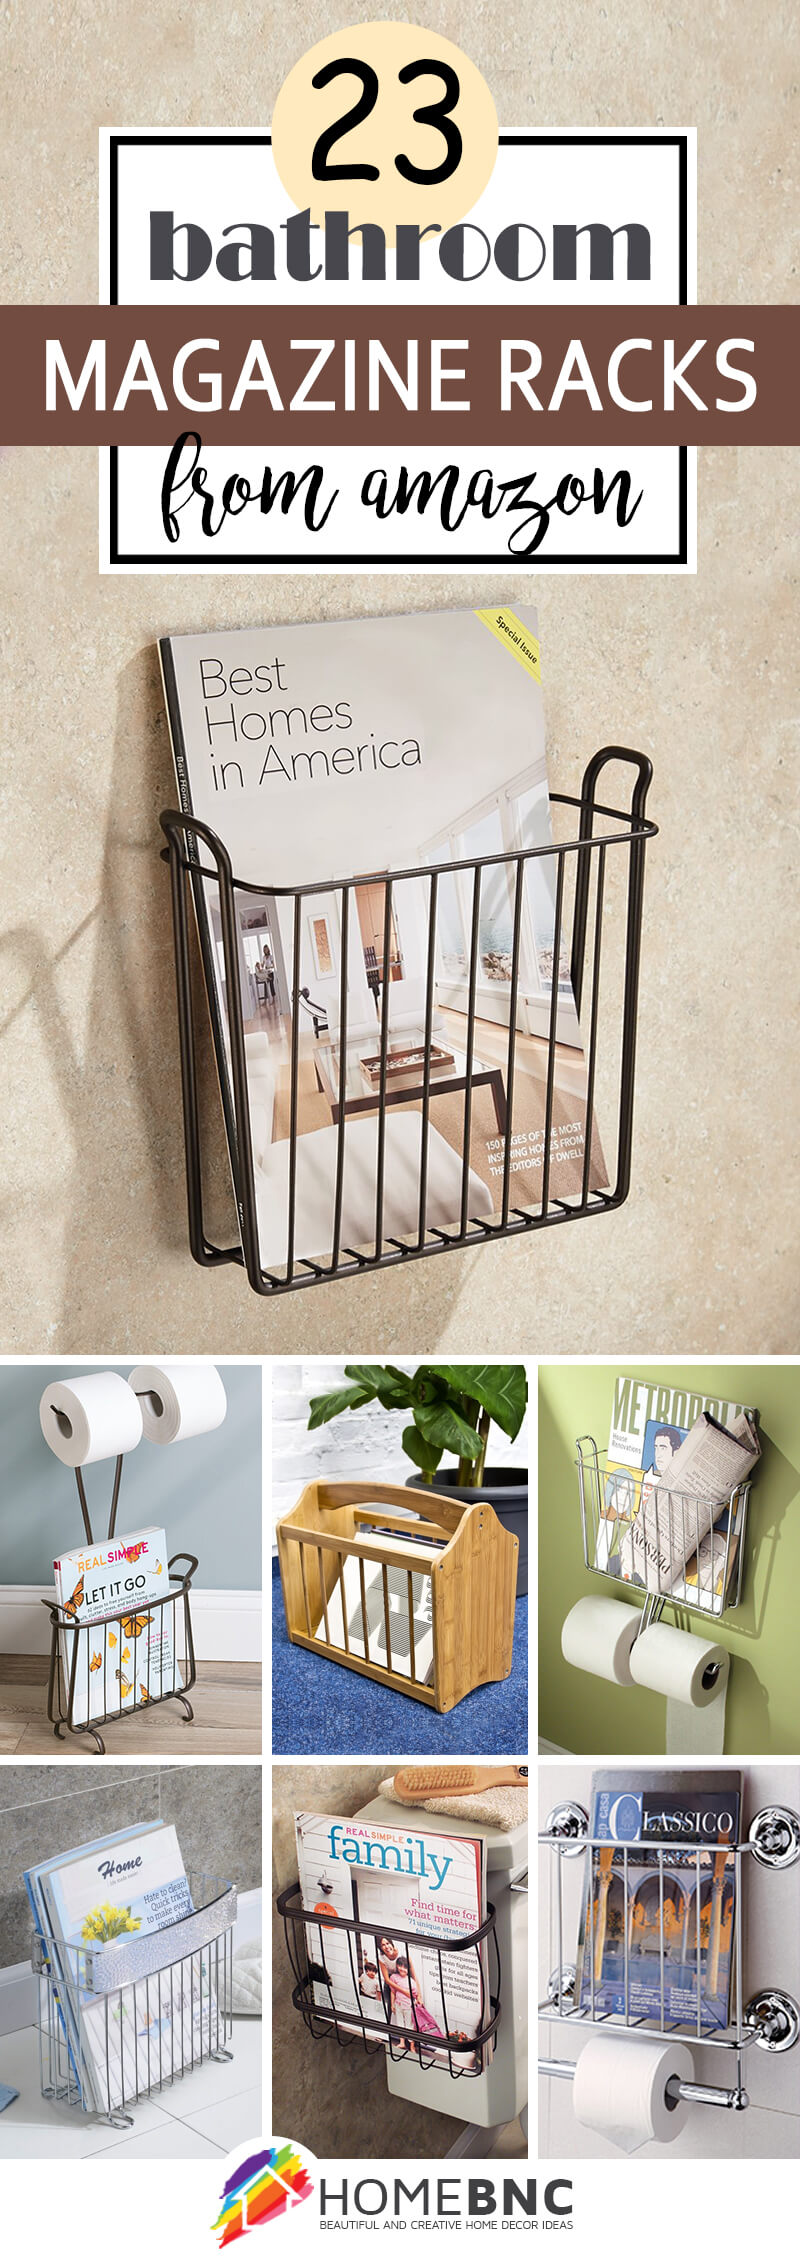 23 Trending Bathroom Magazine Racks